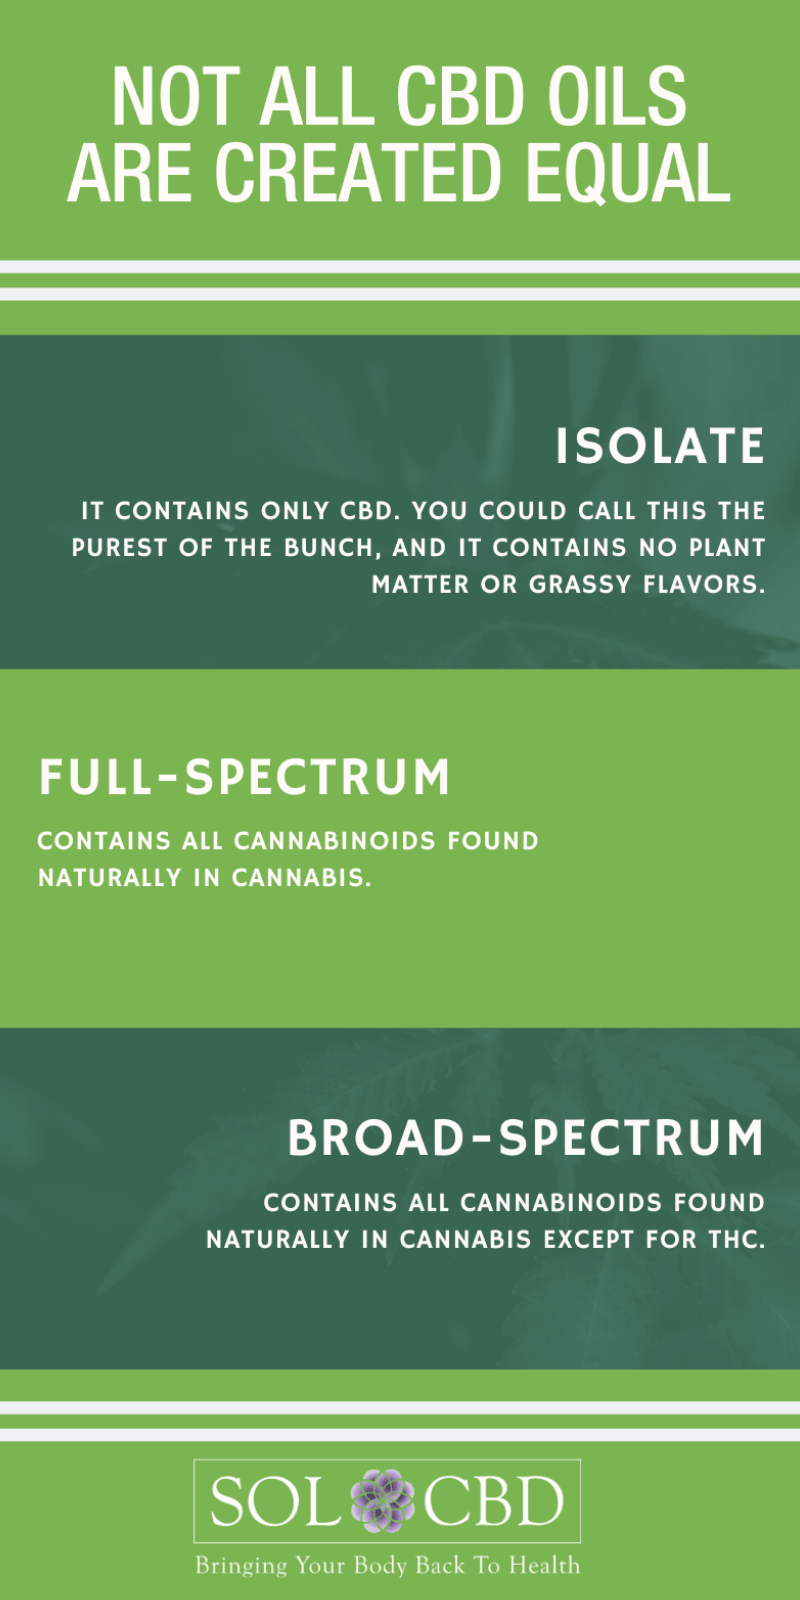 In the world of CBD, there are three main types of extracts: broad-spectrum, full-spectrum, and isolate.